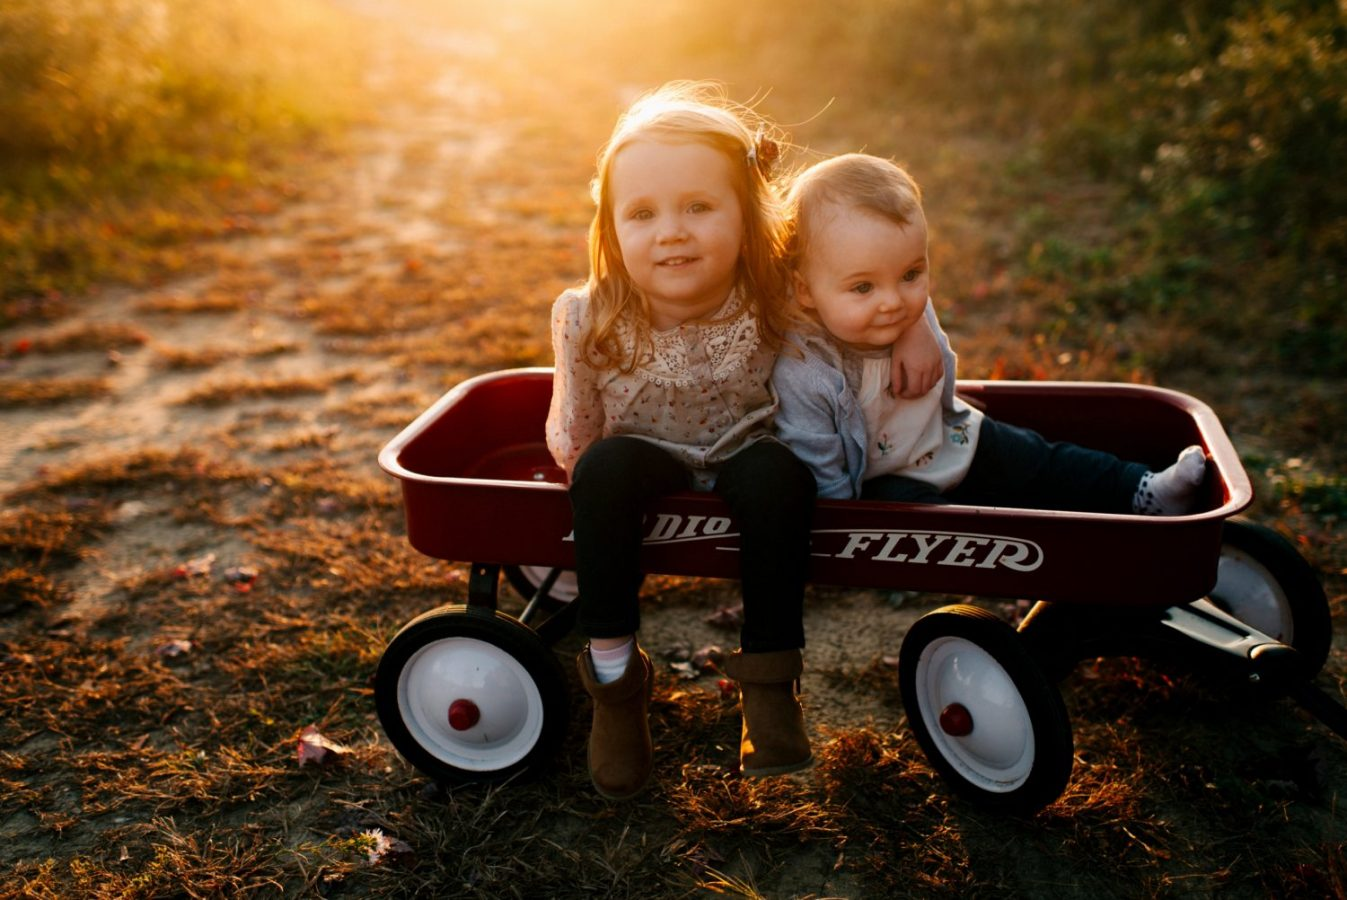 Sisters sitting in a wagon together at sunset